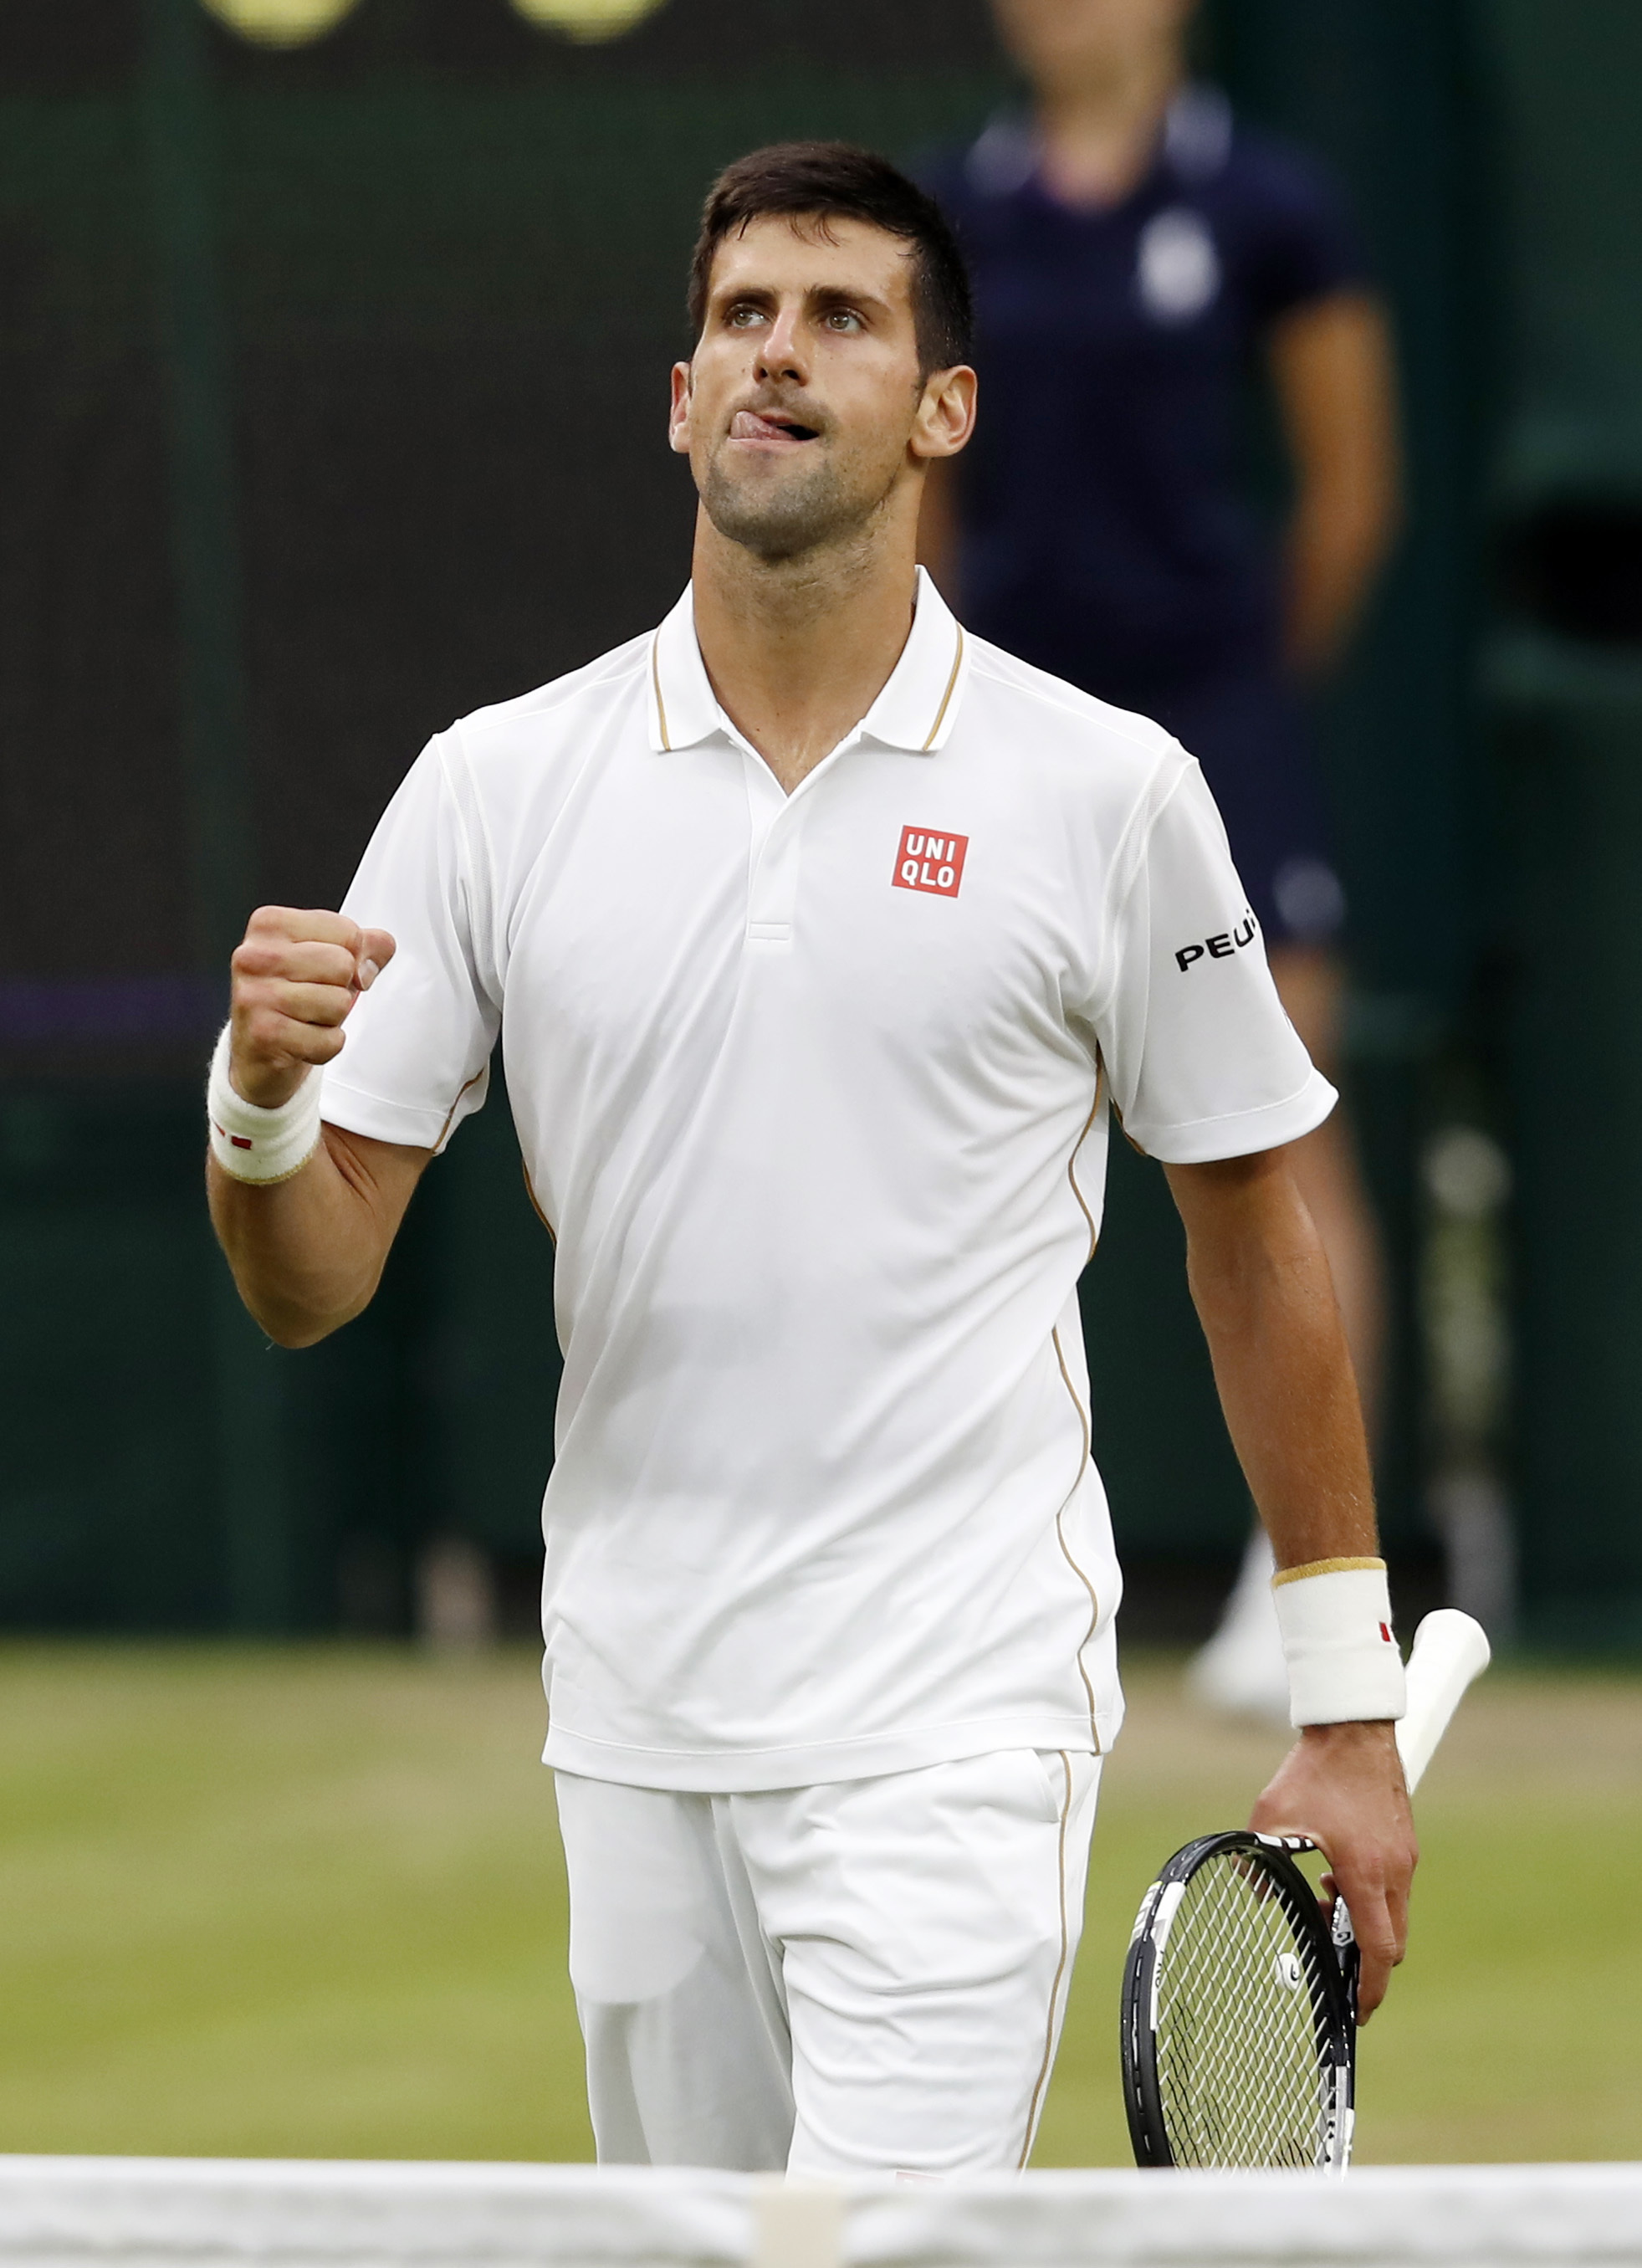 Novak Djokovic of Serbia celebrates after beating Adrian Mannarino of France in their men's singles match on day three of the Wimbledon Tennis Championships in London, Wednesday, June 29, 2016. (AP Photo/Ben Curtis)